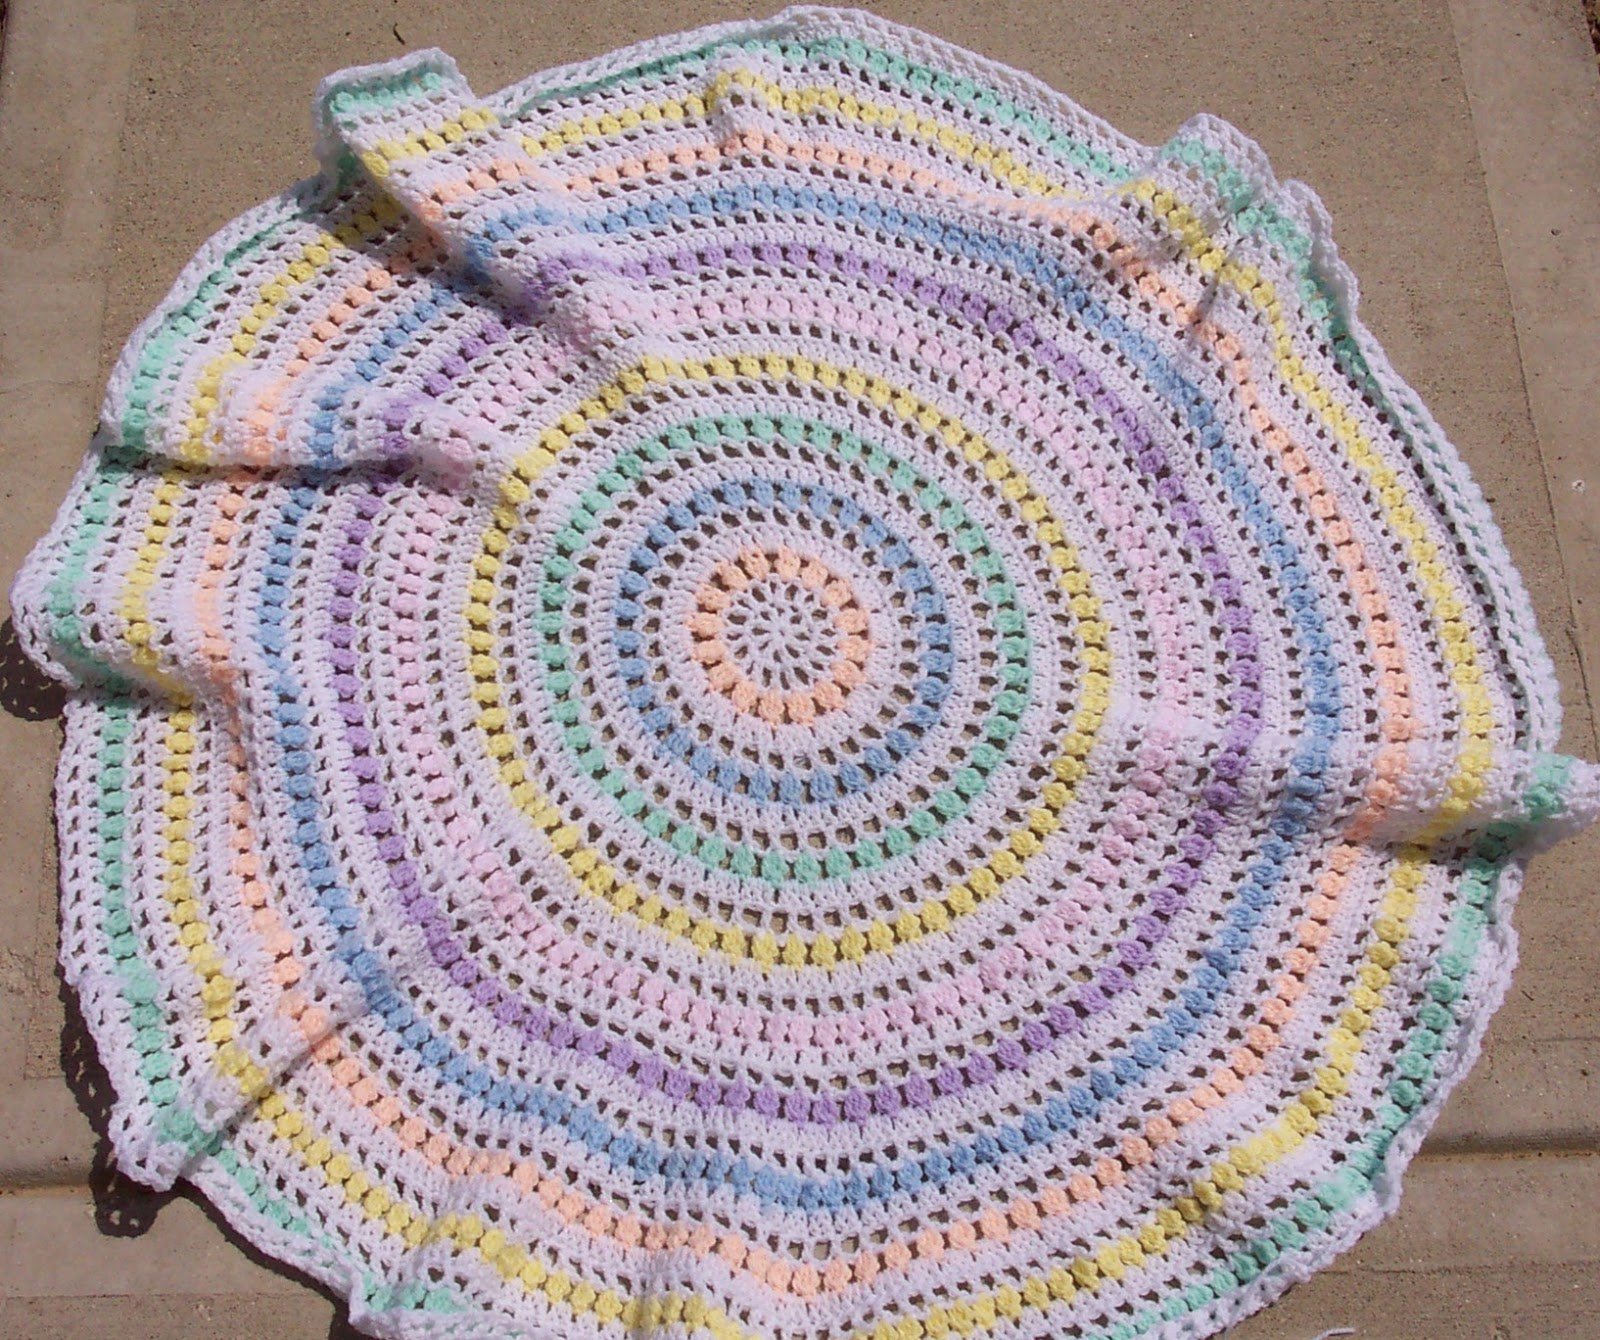 Crochet Pattern Central Free Baby Afghan Crochet Pattern Link : afghan baby blanket crochet pattern round crochet free ...